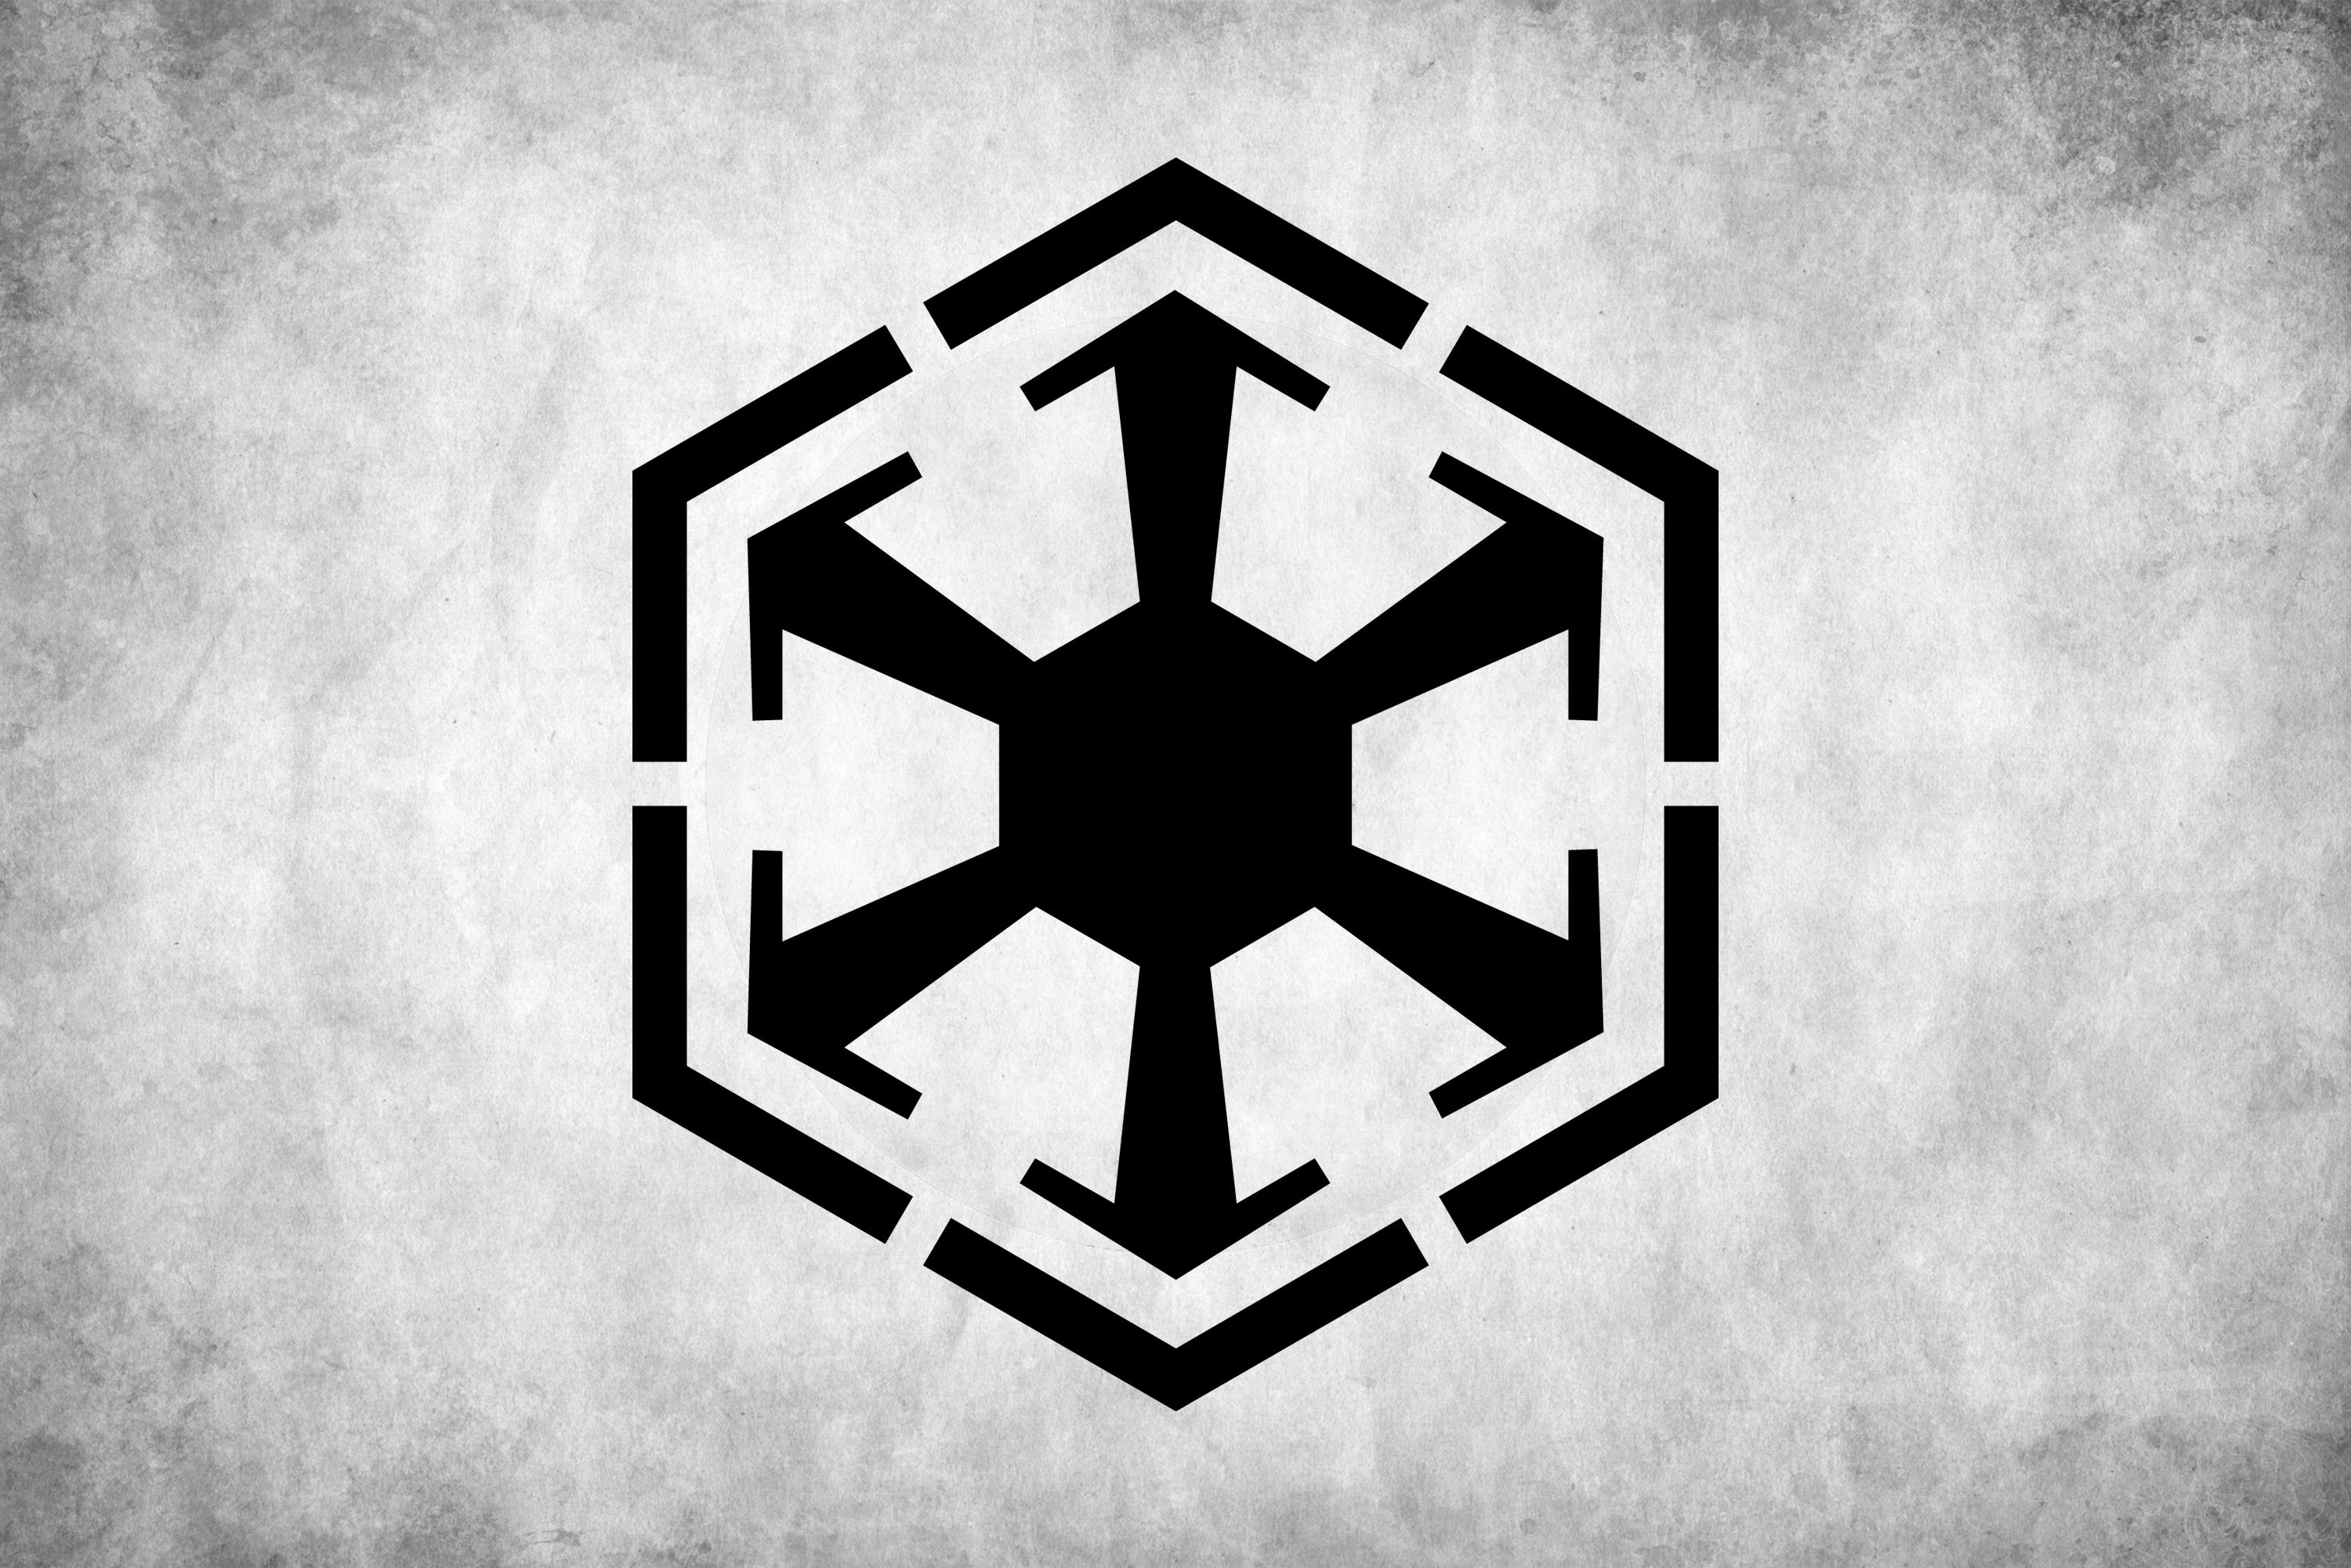 Star Wars Empire Wallpapers Top Free Star Wars Empire Backgrounds Wallpaperaccess